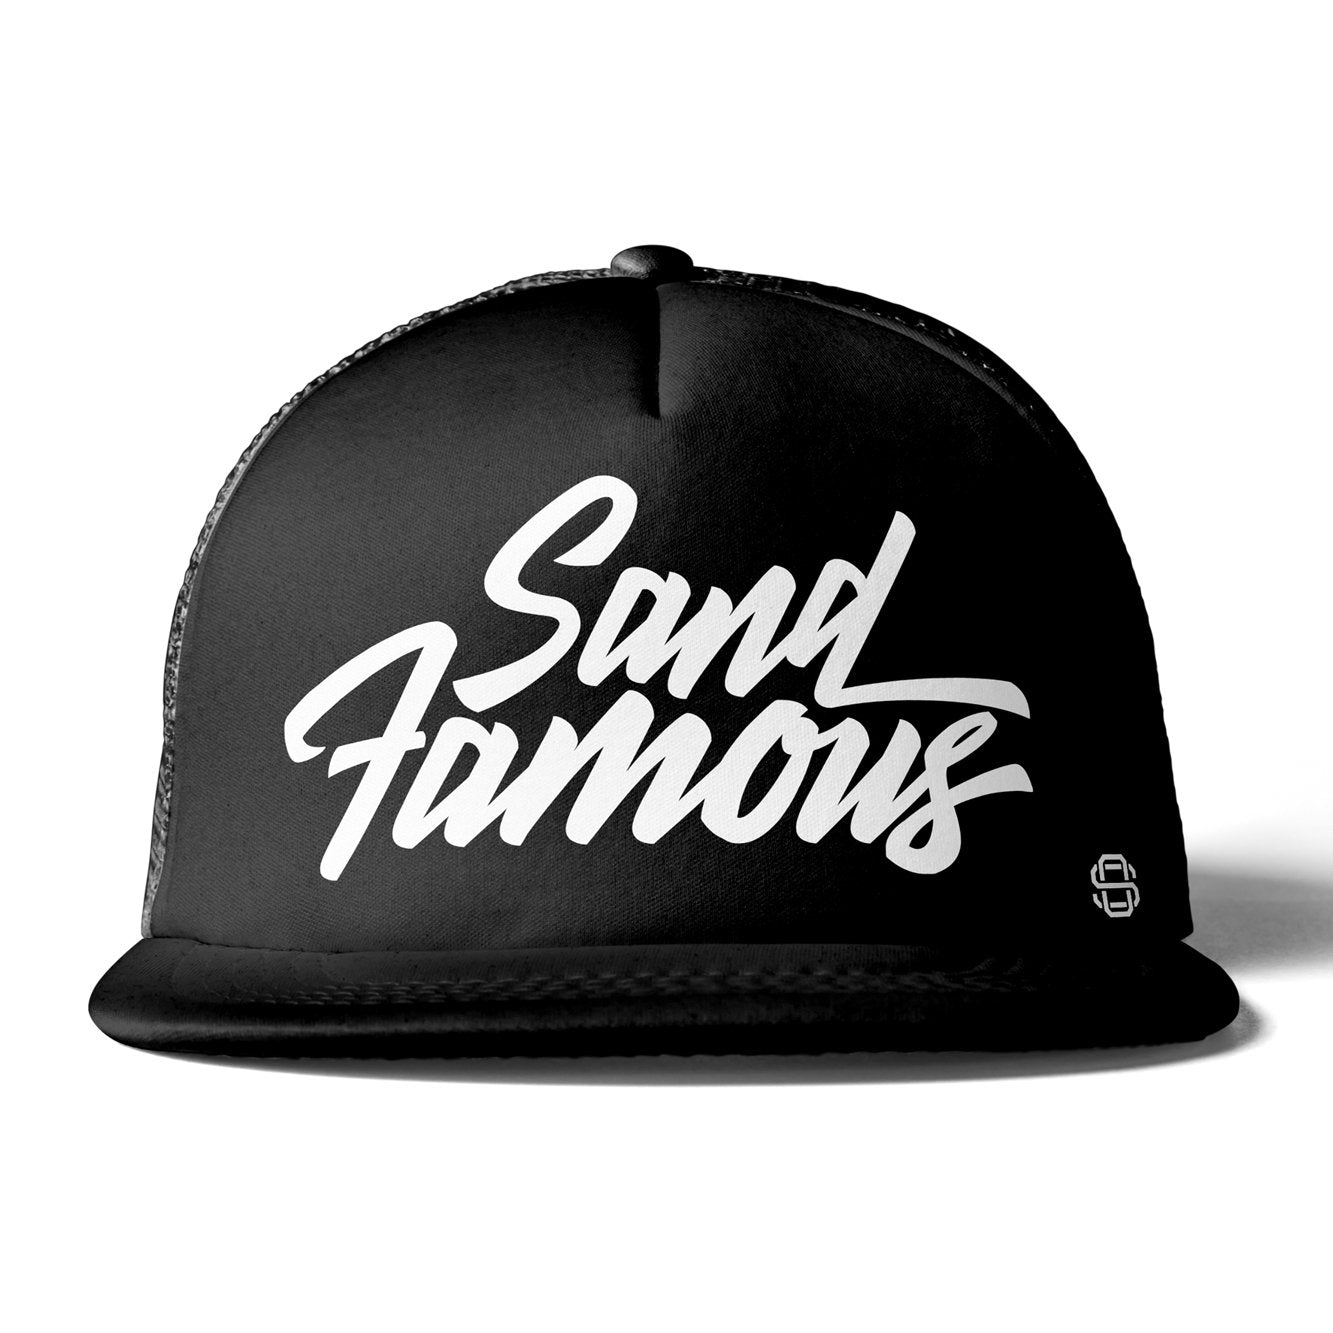 Off-Road Swagg Sand Famous Premium Flat Bill Trucker Hat